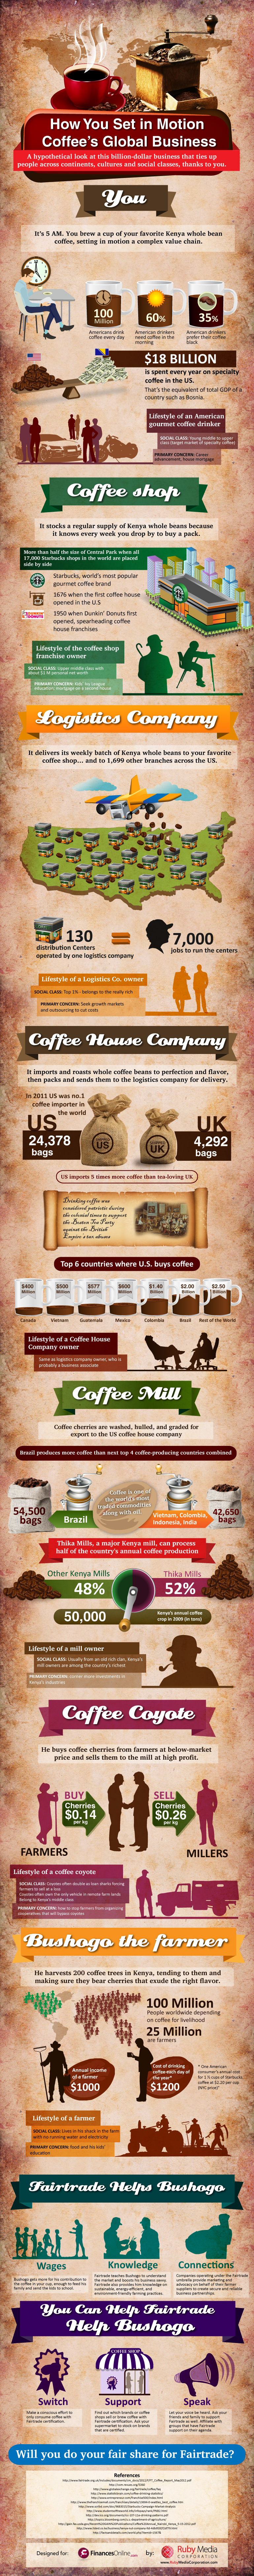 coffee infographic The Unfair Trade: An Insightful Look at How Coffee Gets From the Farmer to Your Cup (INFOGRAPHIC)